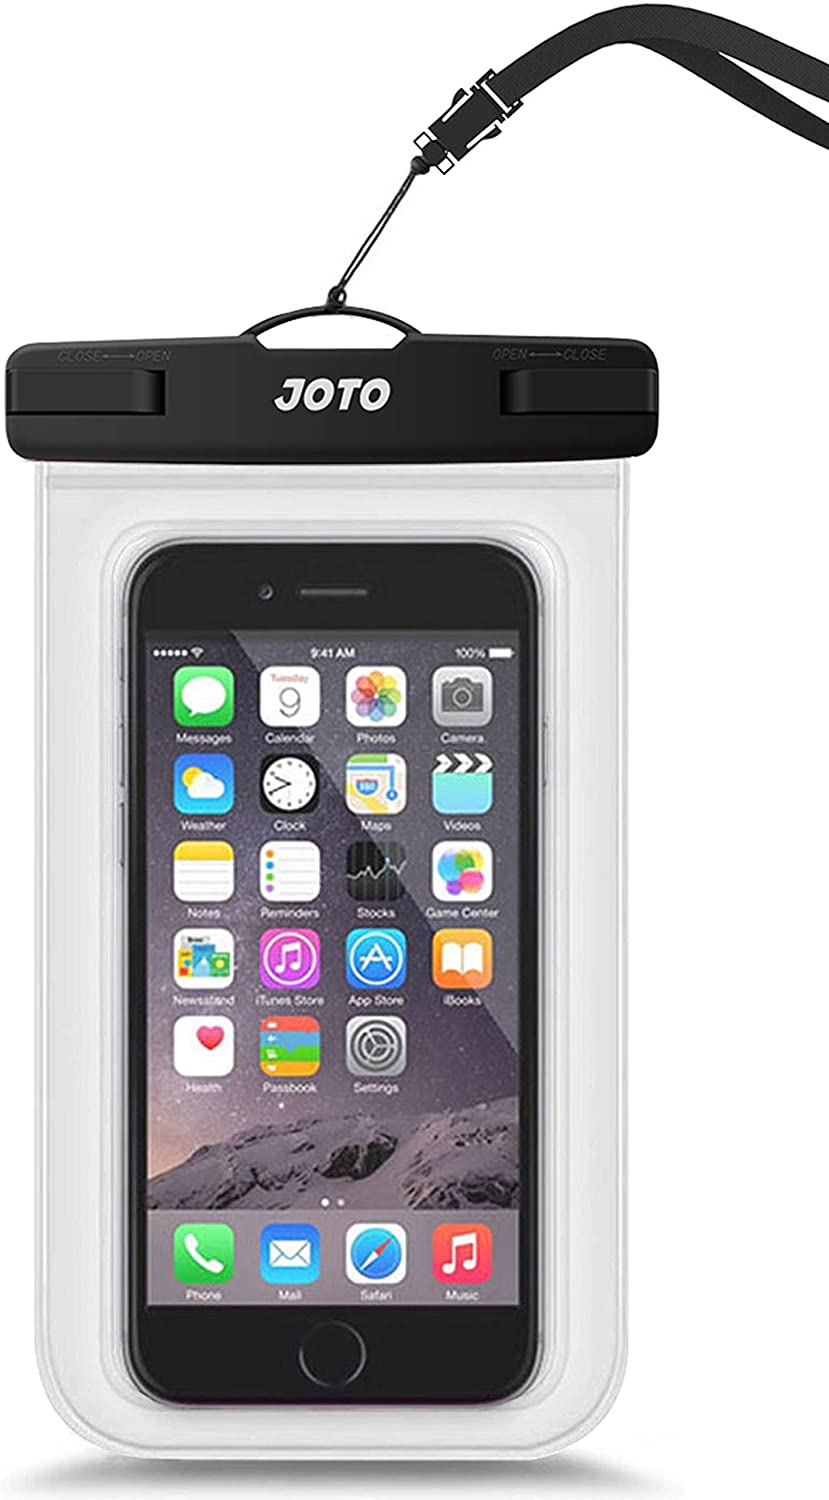 "JOTO Universal Waterproof Pouch Cellphone Dry Bag Case for iPhone 11 Pro Max Xs Max XR X 8 7 6S Plus, Galaxy S20 Ultra S20+ S10 Plus S10e S9 Plus S8/Note 10+ 10 9 8, Pixel 4 XL 3a up to 6.9"" -Clear"